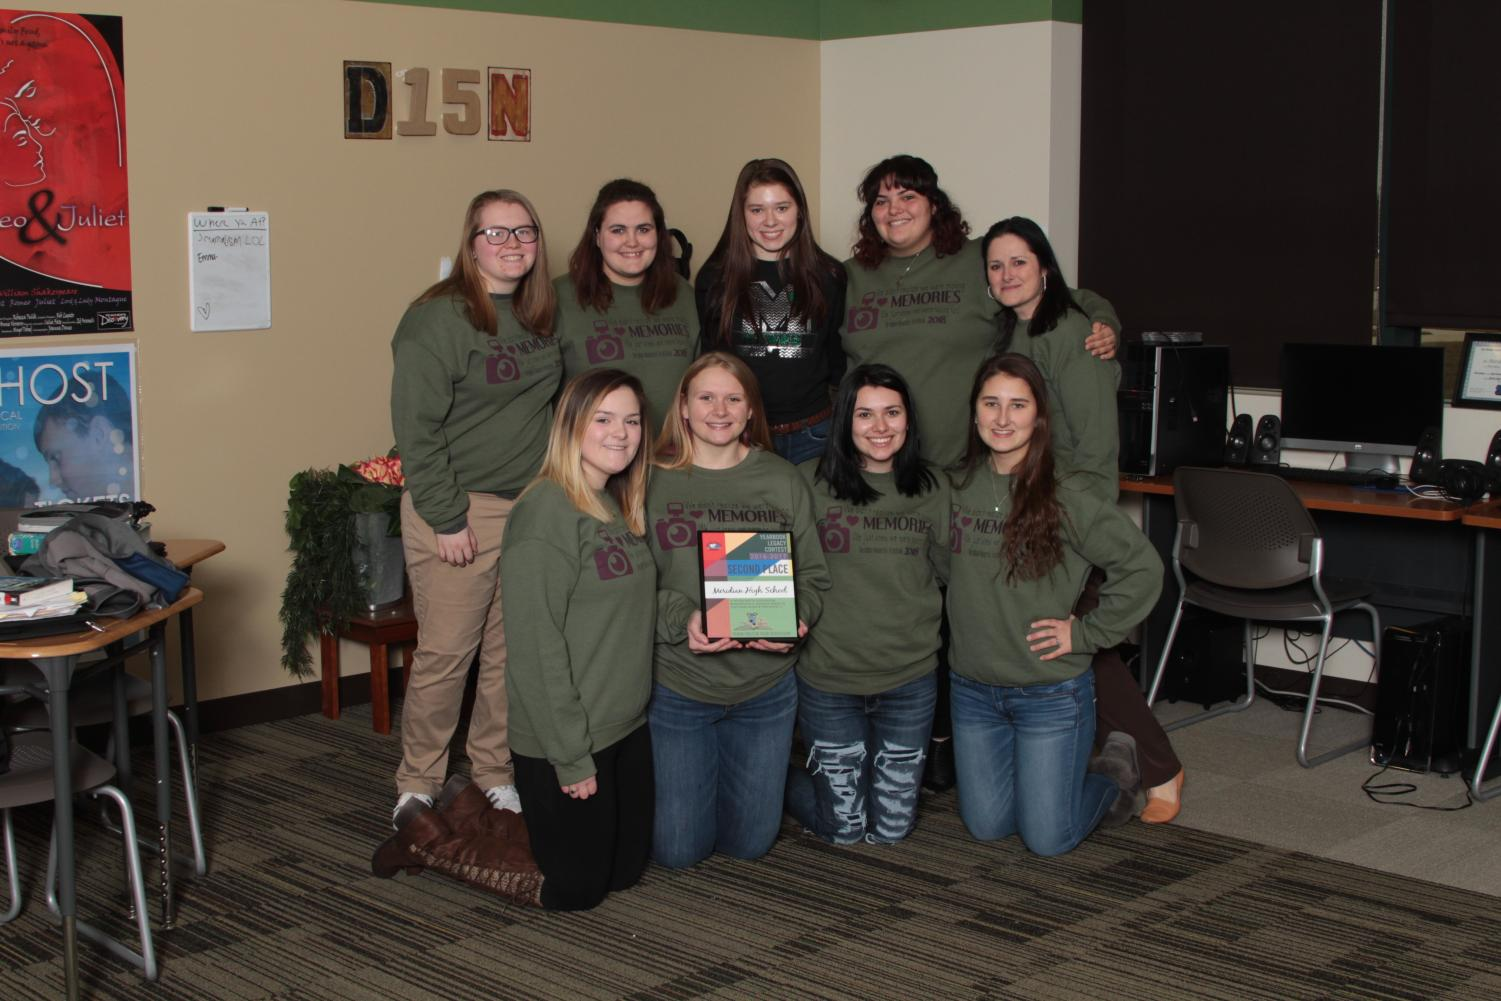 Meridian Moments accepts their second place award from Inter-state Studios. The yearbook staff competed against thousands of high schools nationwide. Marissa Oliver said,